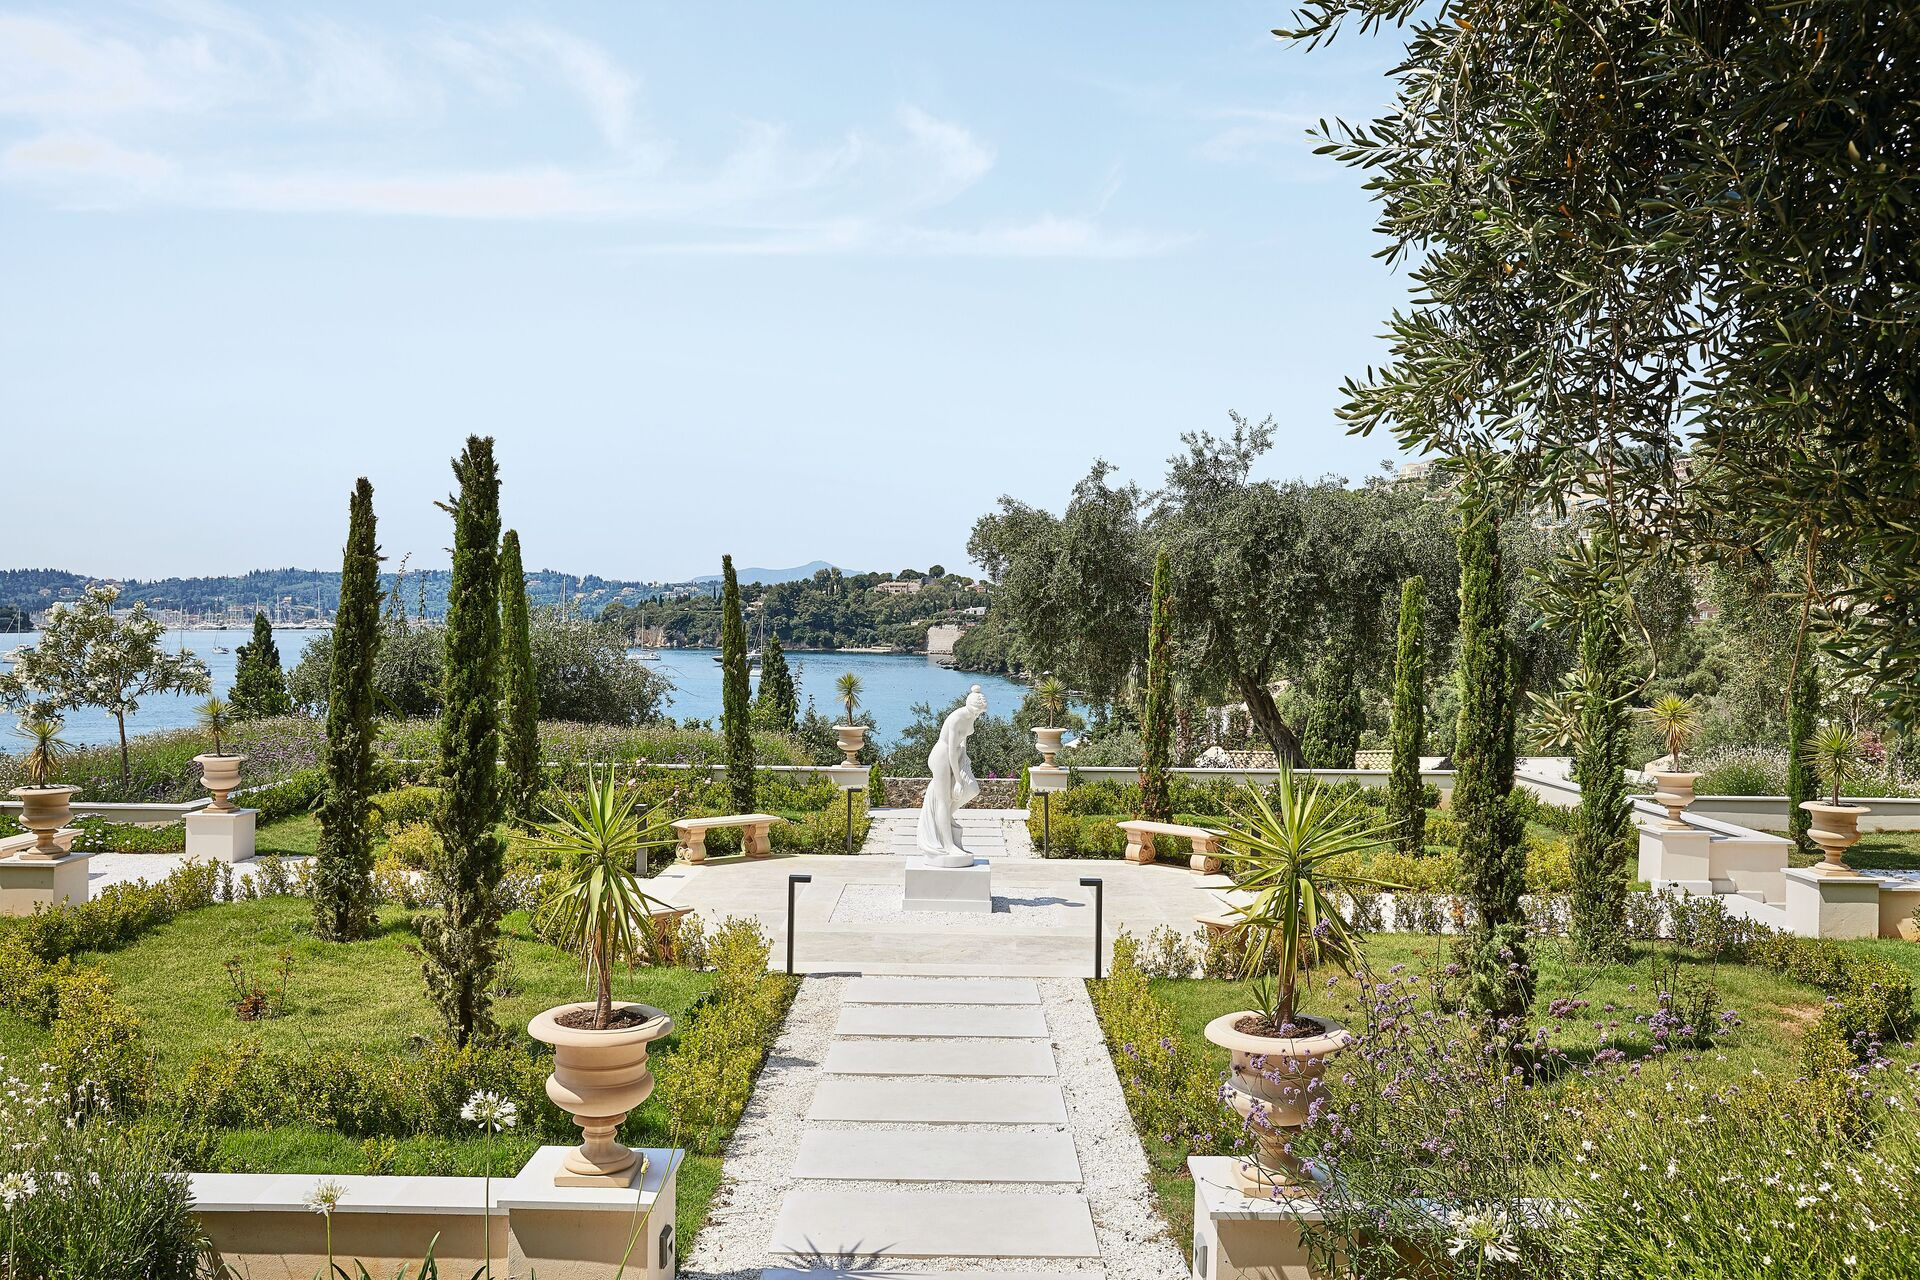 https://cms.satur.sk/data/imgs/tour_image/orig/05-corfu-imperial-richness-of-velvet-green-trees-that-plunge-into-the-bluest-of-waters_72dpi-1-1943070.jpg